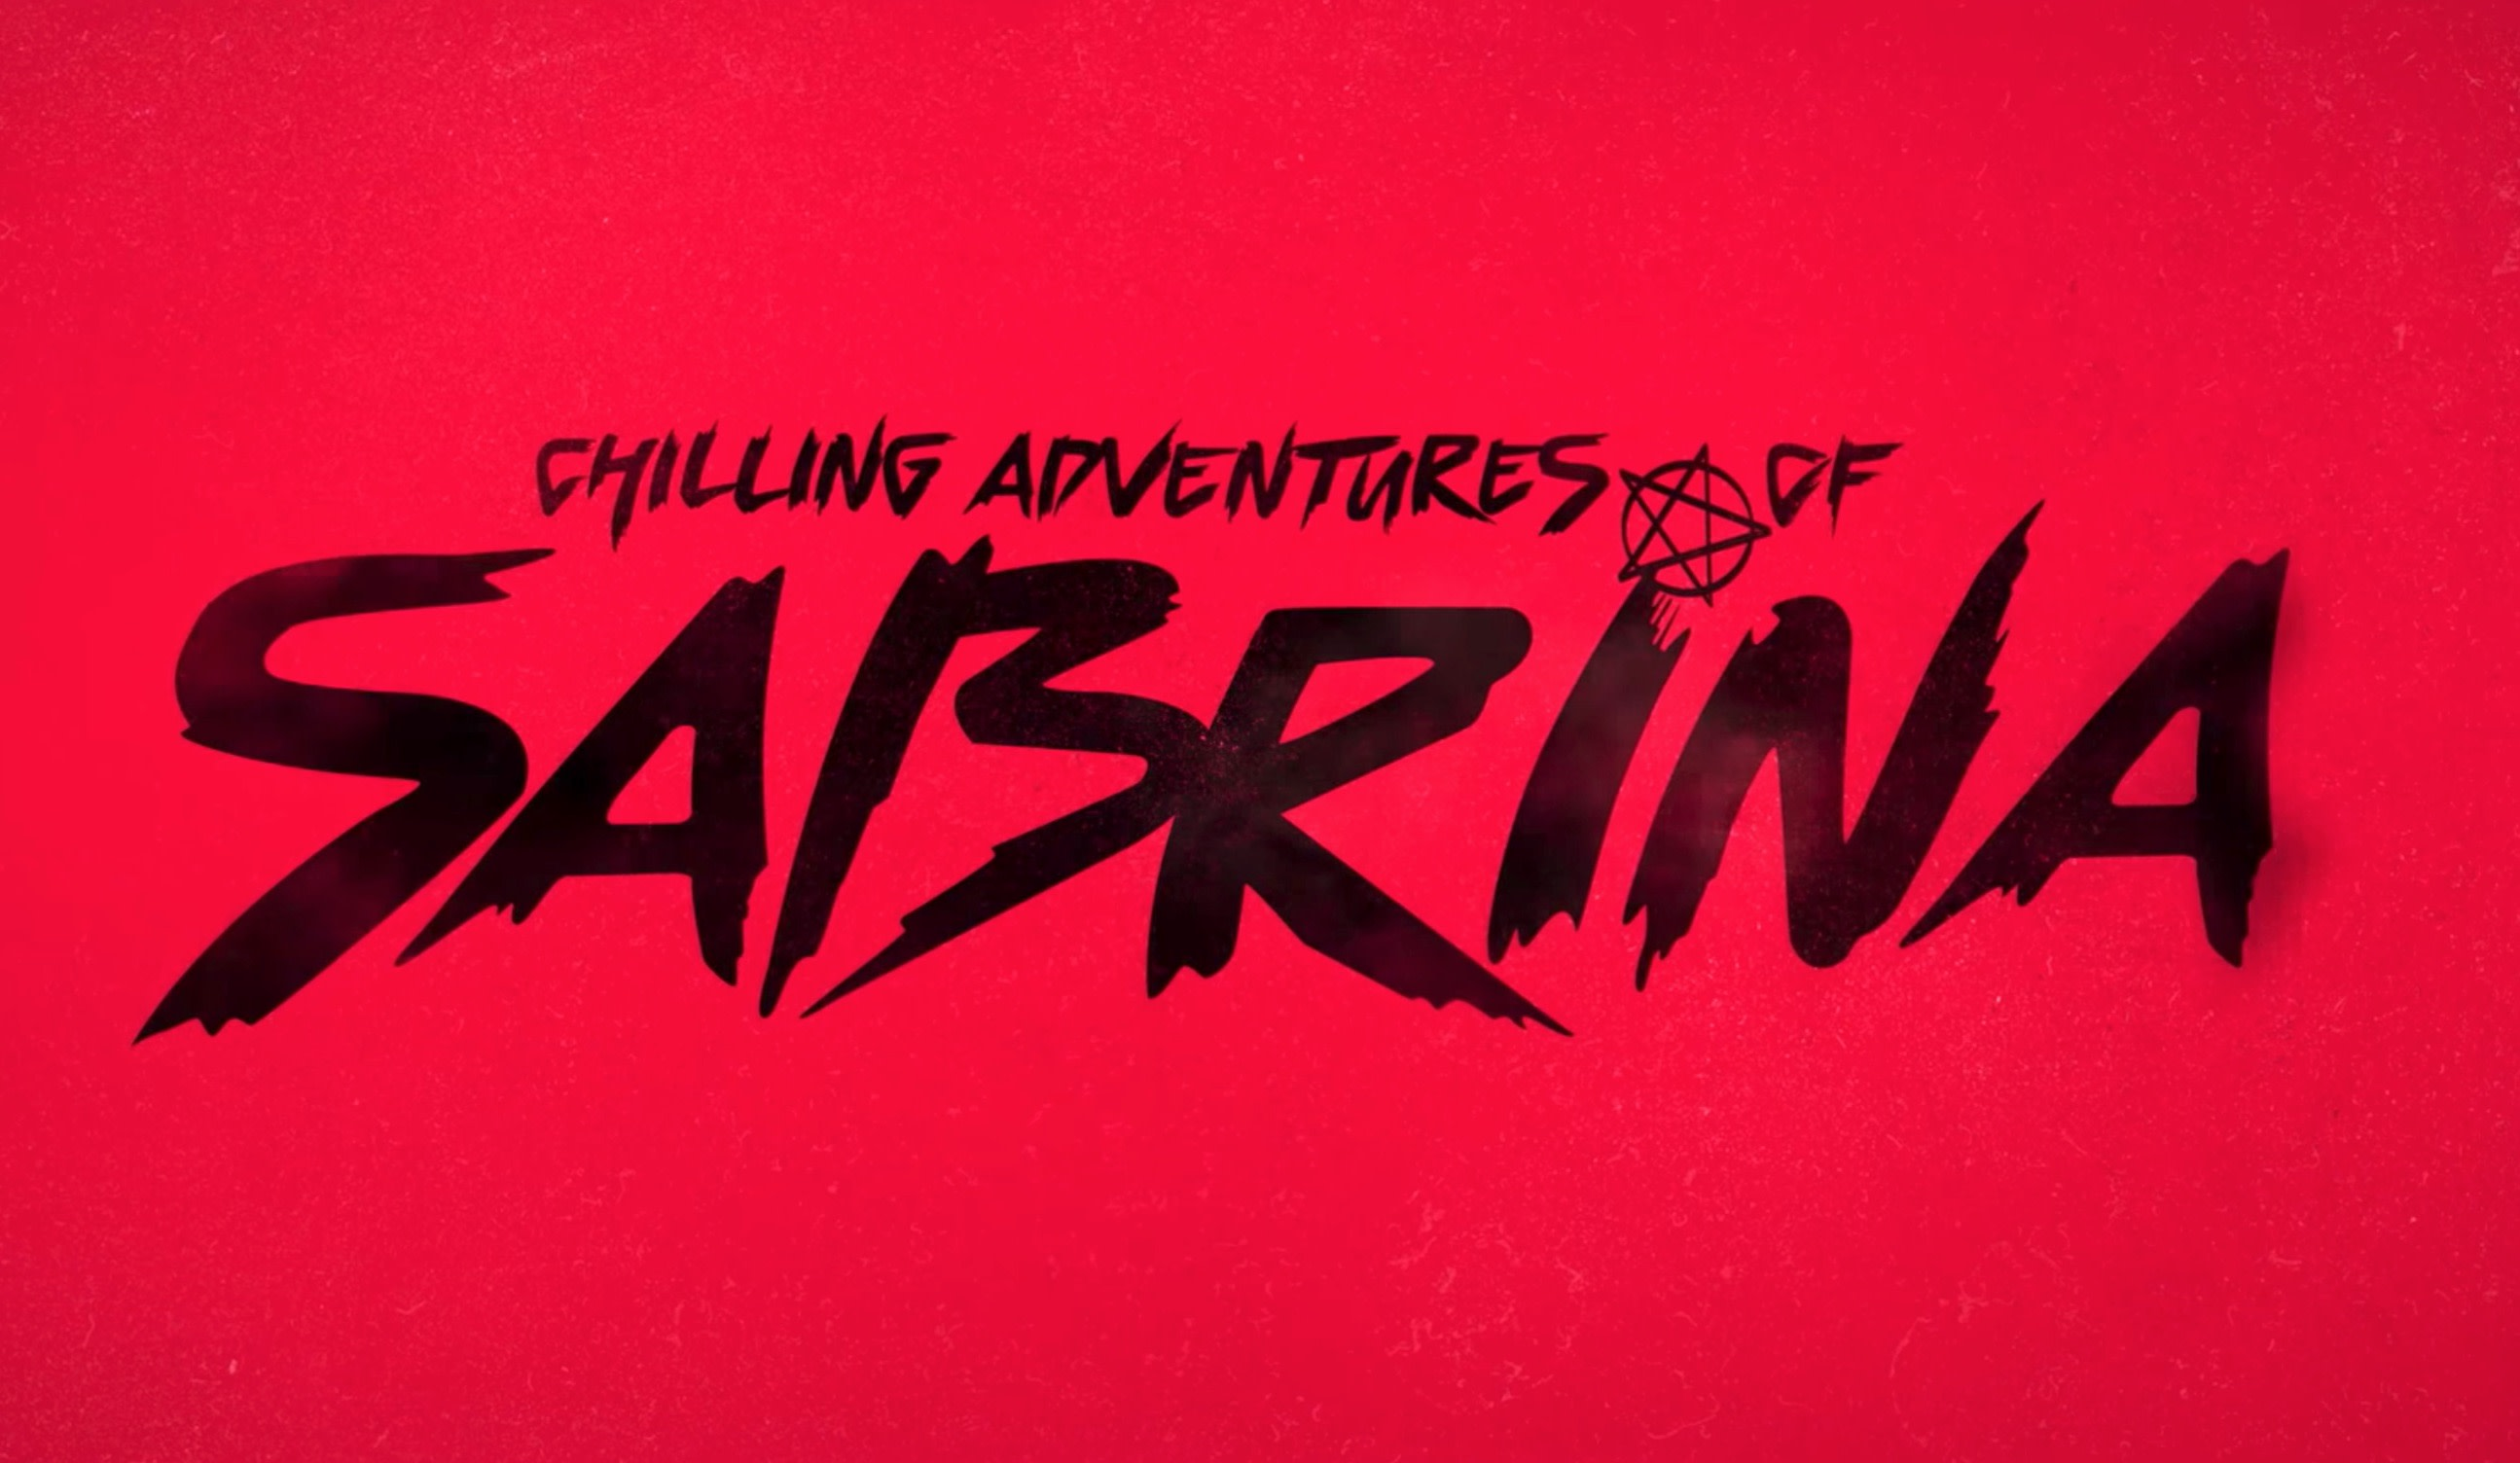 First Look: Chilling Adventures of Sabrina (Season 2 - Netflix)